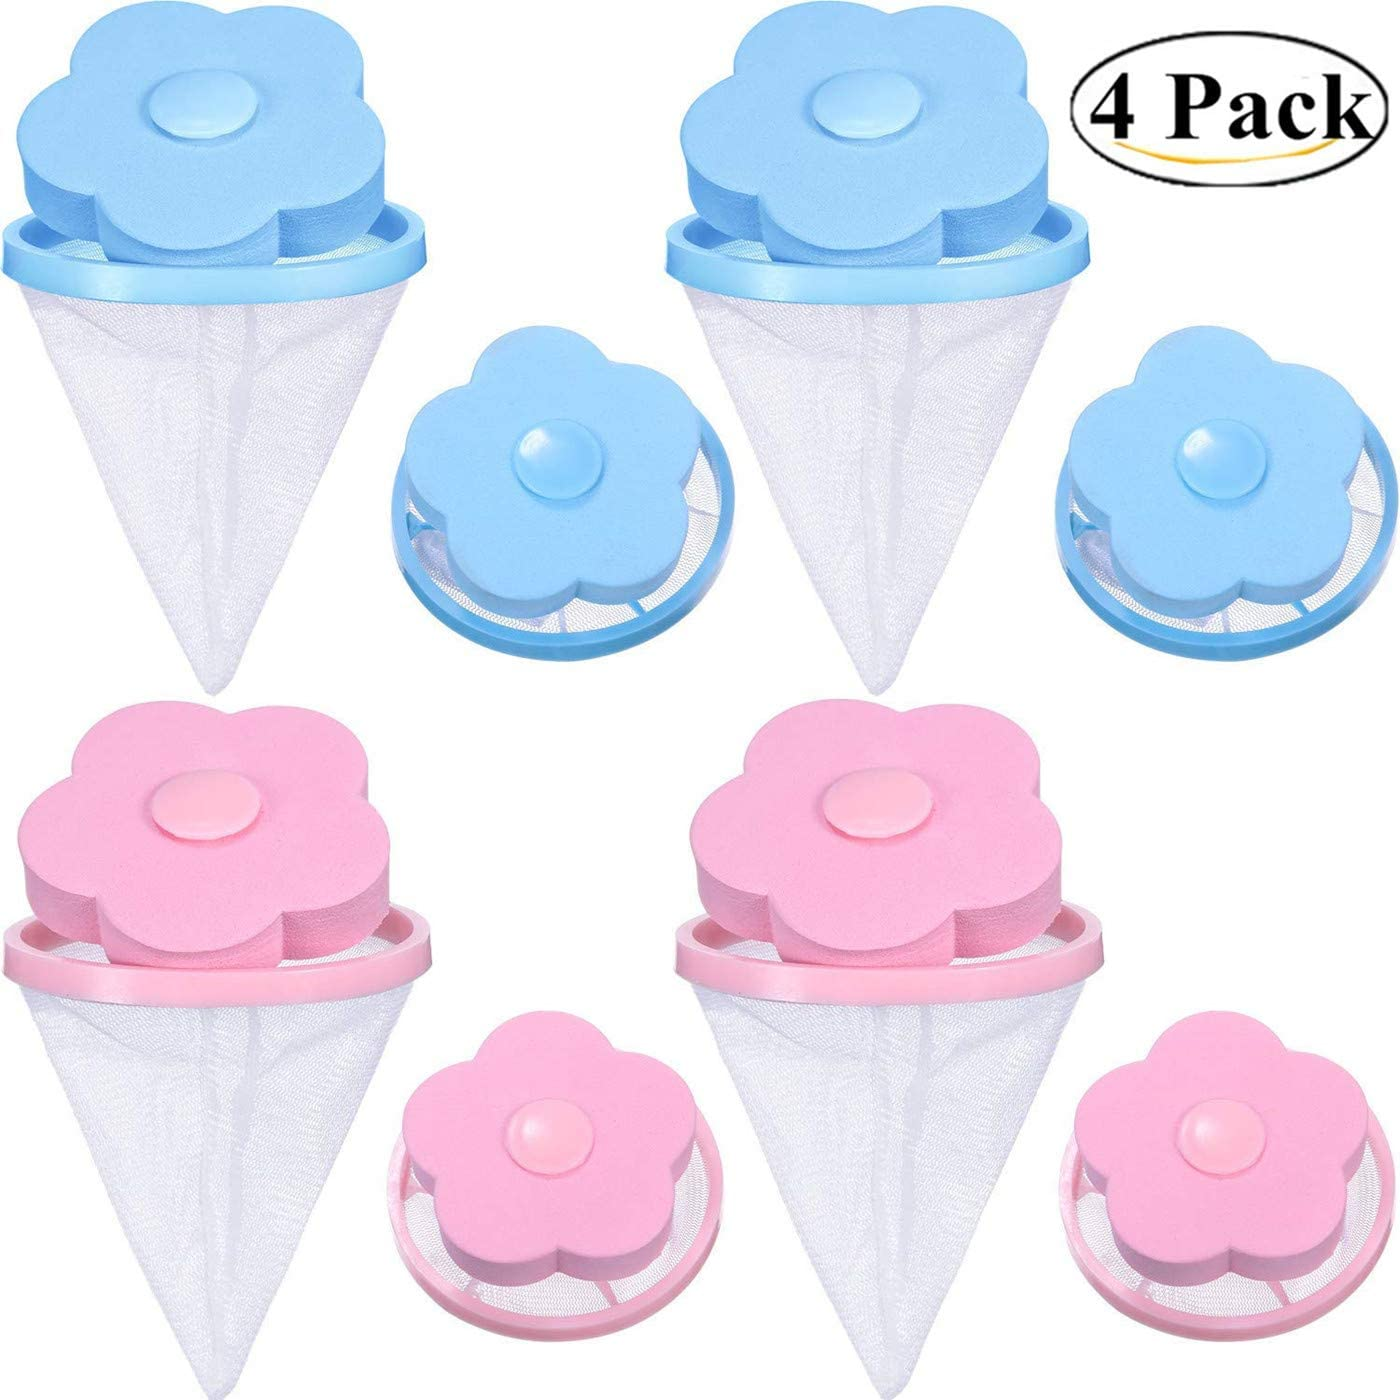 DurReus Portable Laundry Washing Machine Floating Lint Removers Reusable Hair Filter Catcher Mesh Bag Pack 4(Blue and Pink)